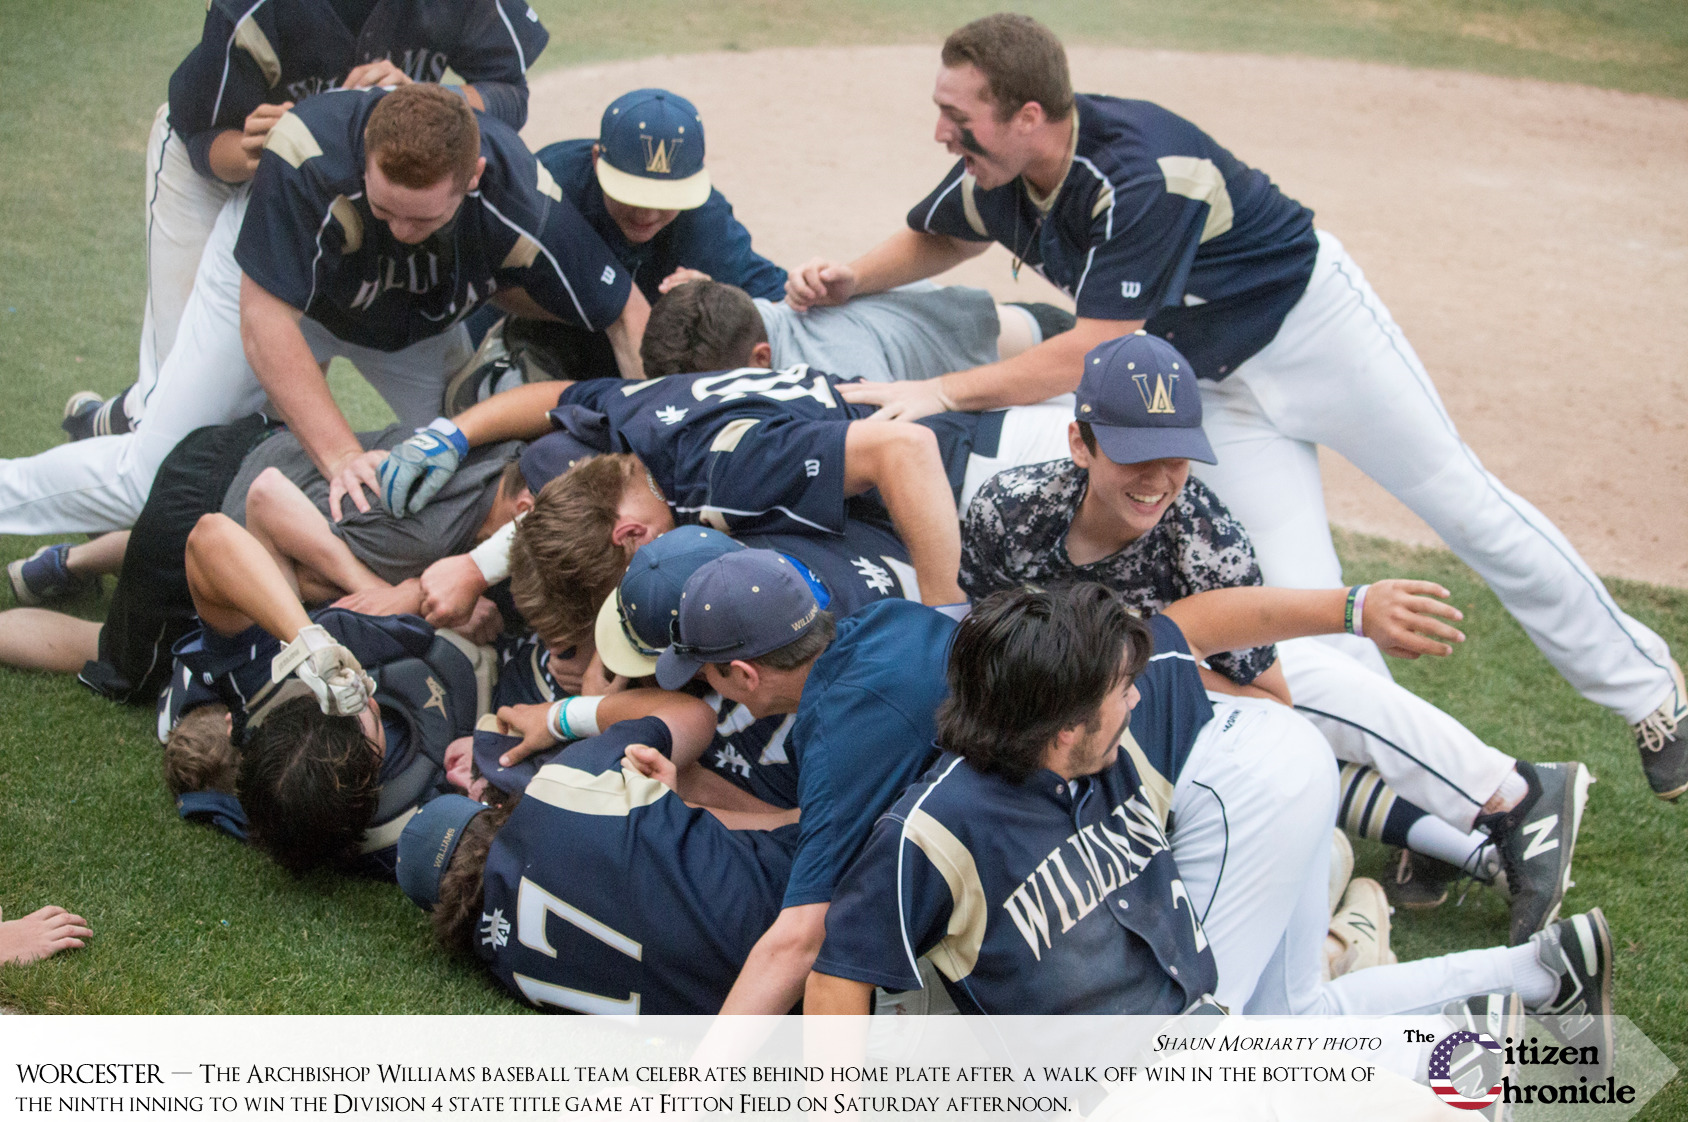 Oxford falls in Division 4 state championship game